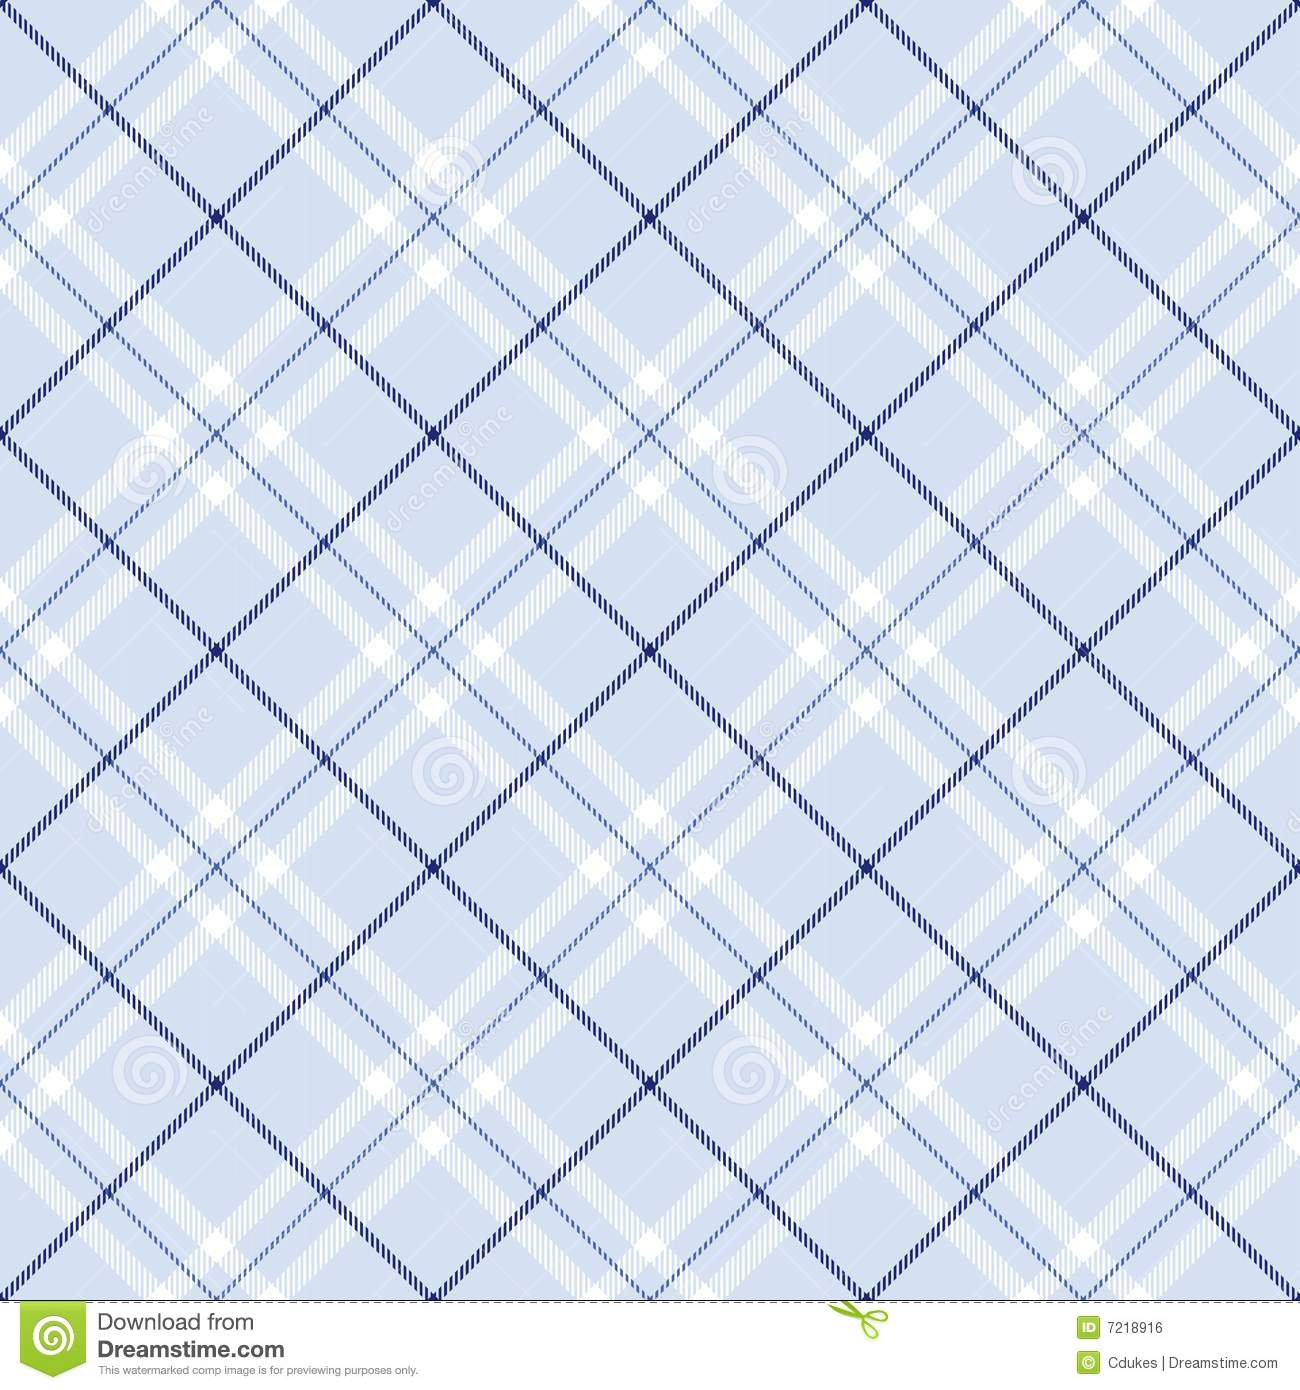 Light Blue Plaid Royalty Free Stock Image - Image: 7218916